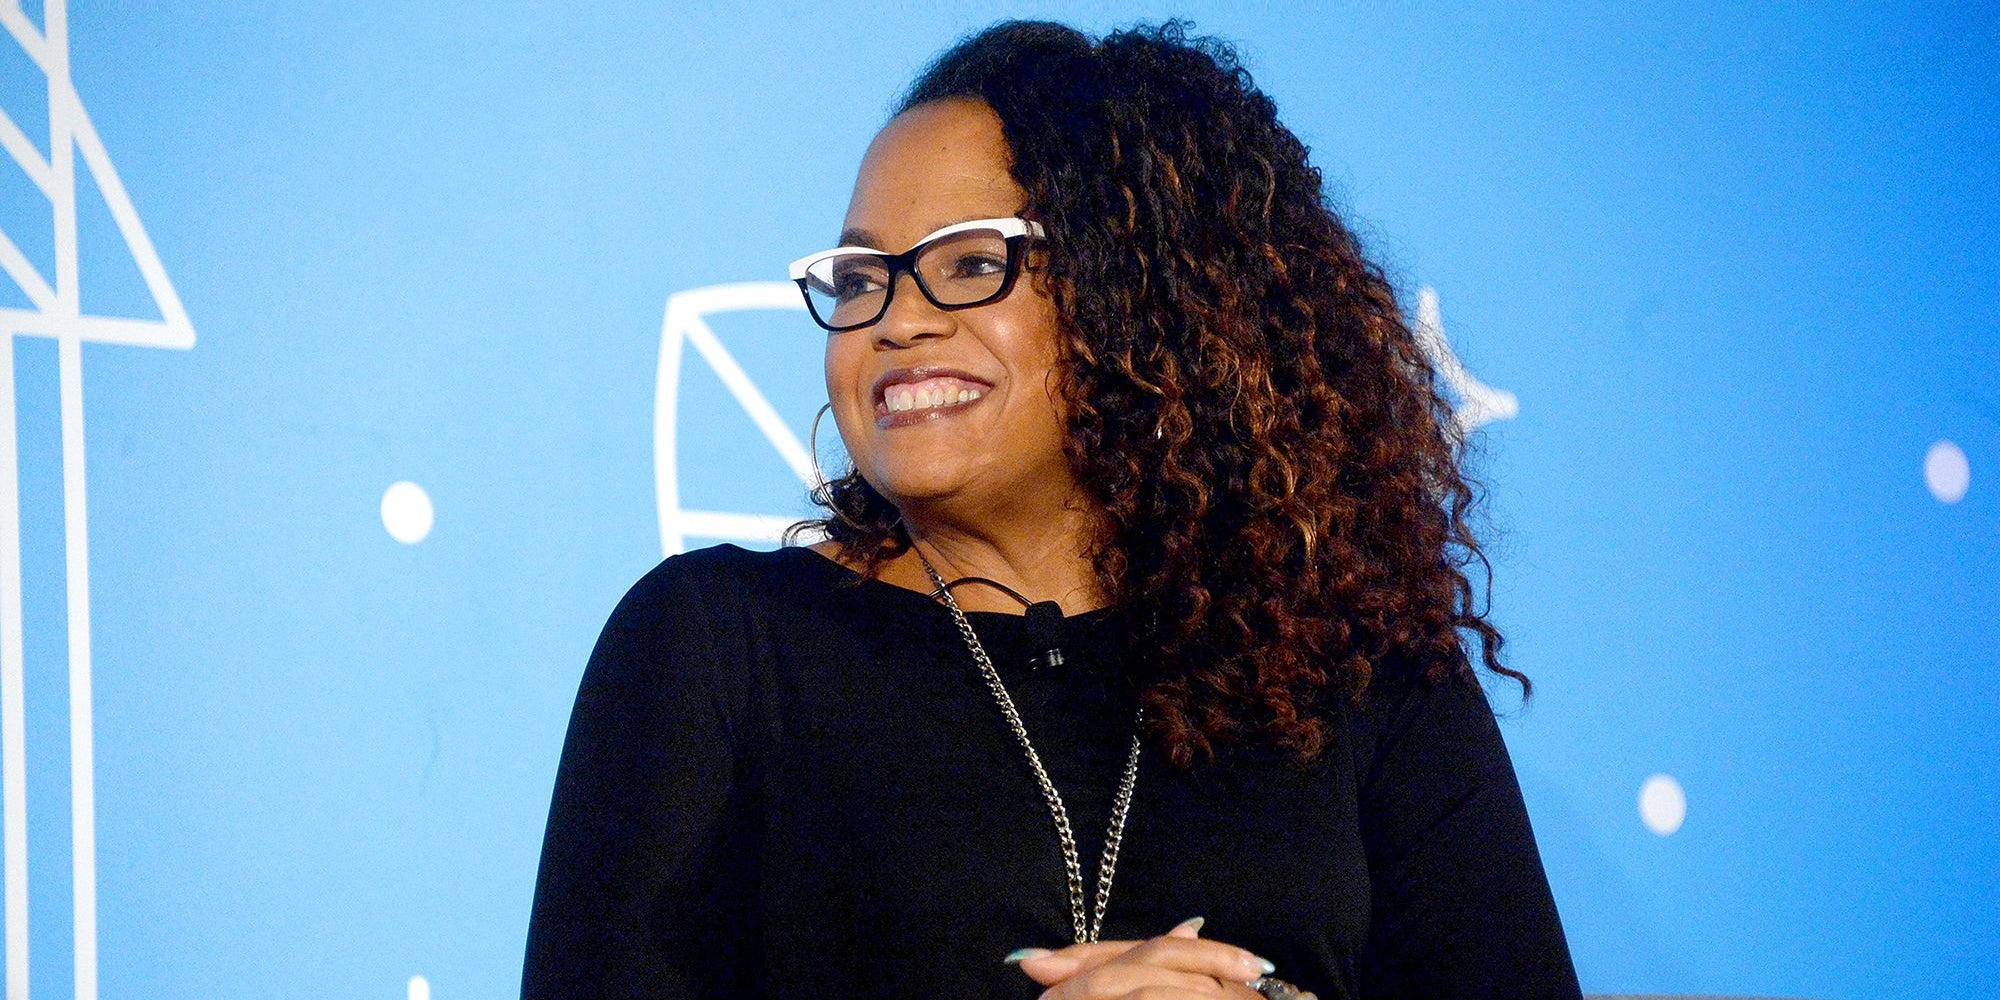 From 25 Cents to $25,000 and Beyond: How 15 African-American Entrepreneurs Funded Their Businesses